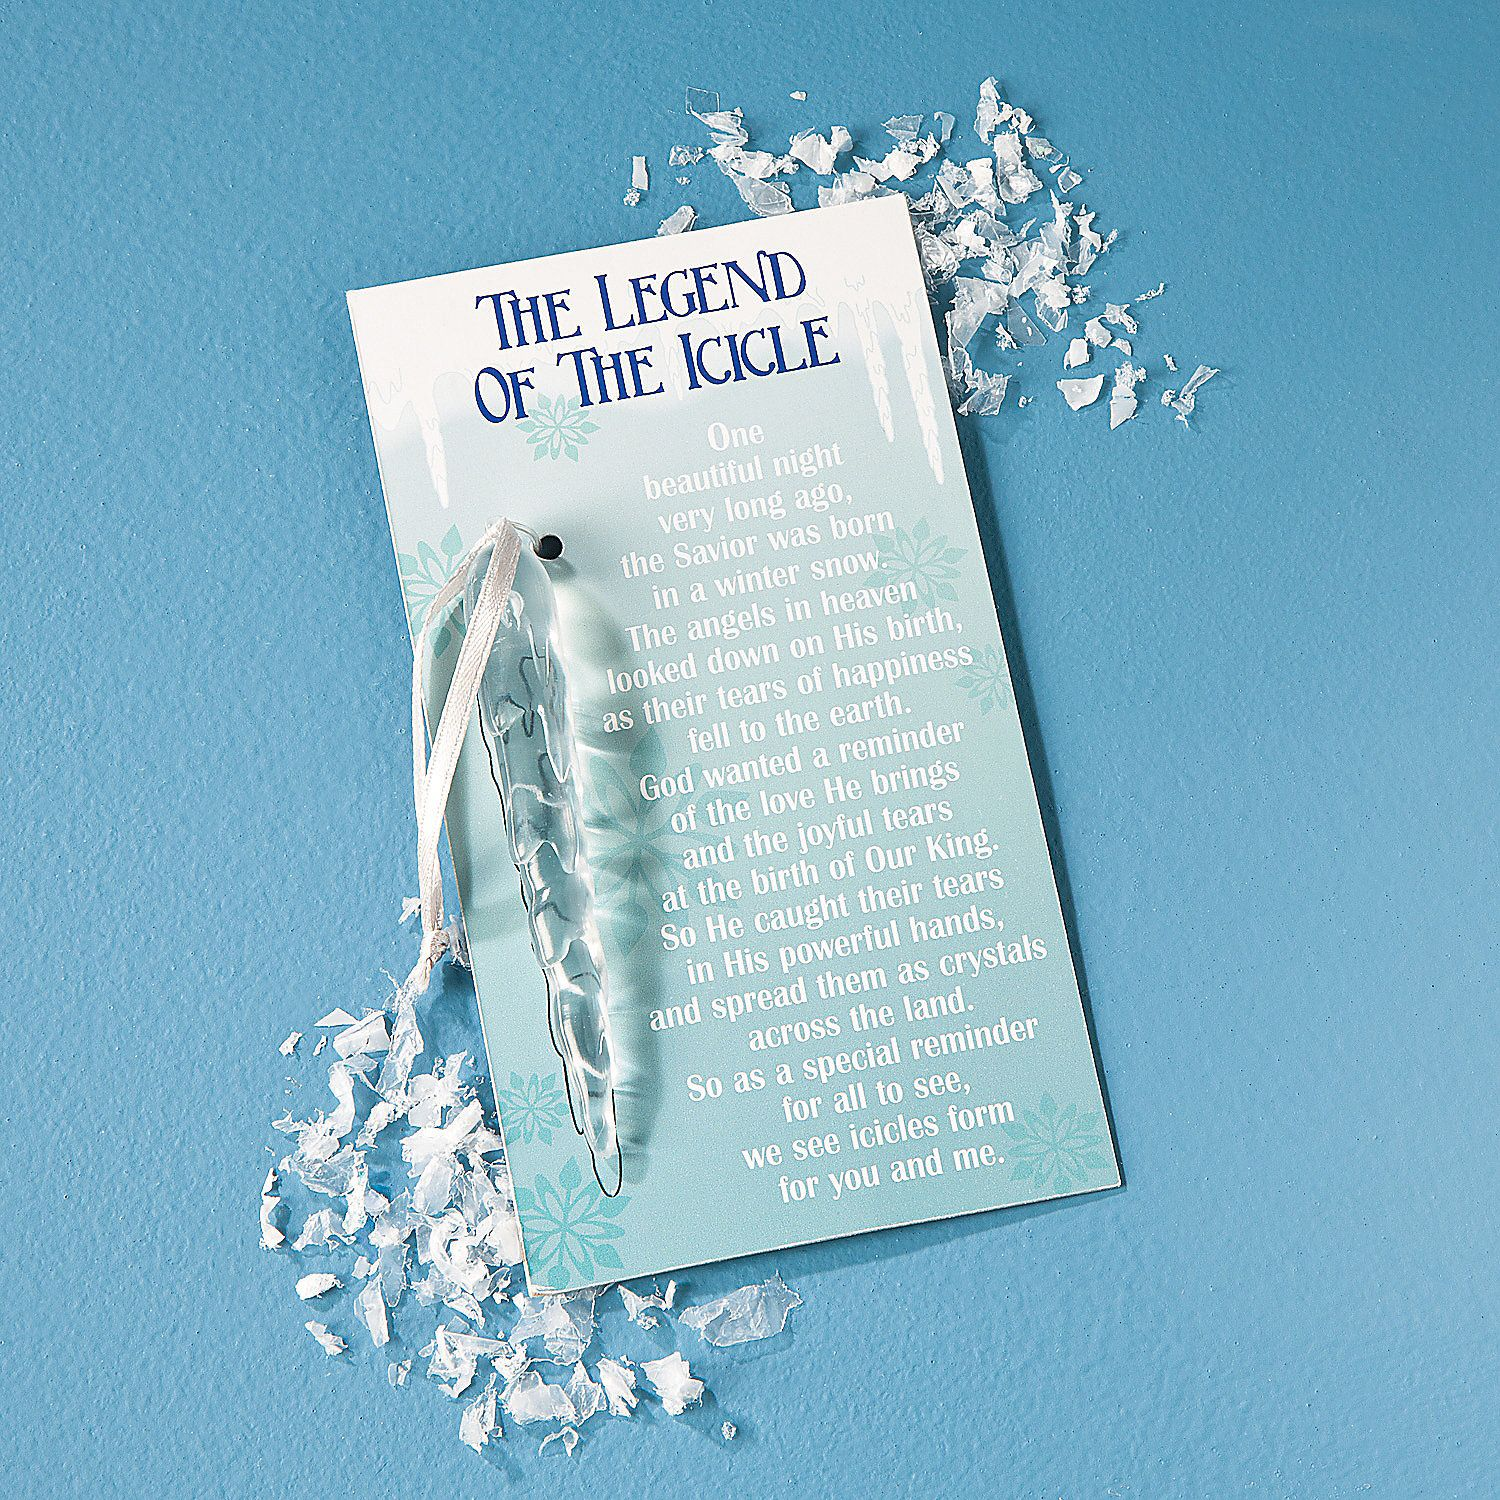 Ice cycle ornaments -  The Legend Of The Icicle Christmas Ornaments On Cards Orientaltrading Com